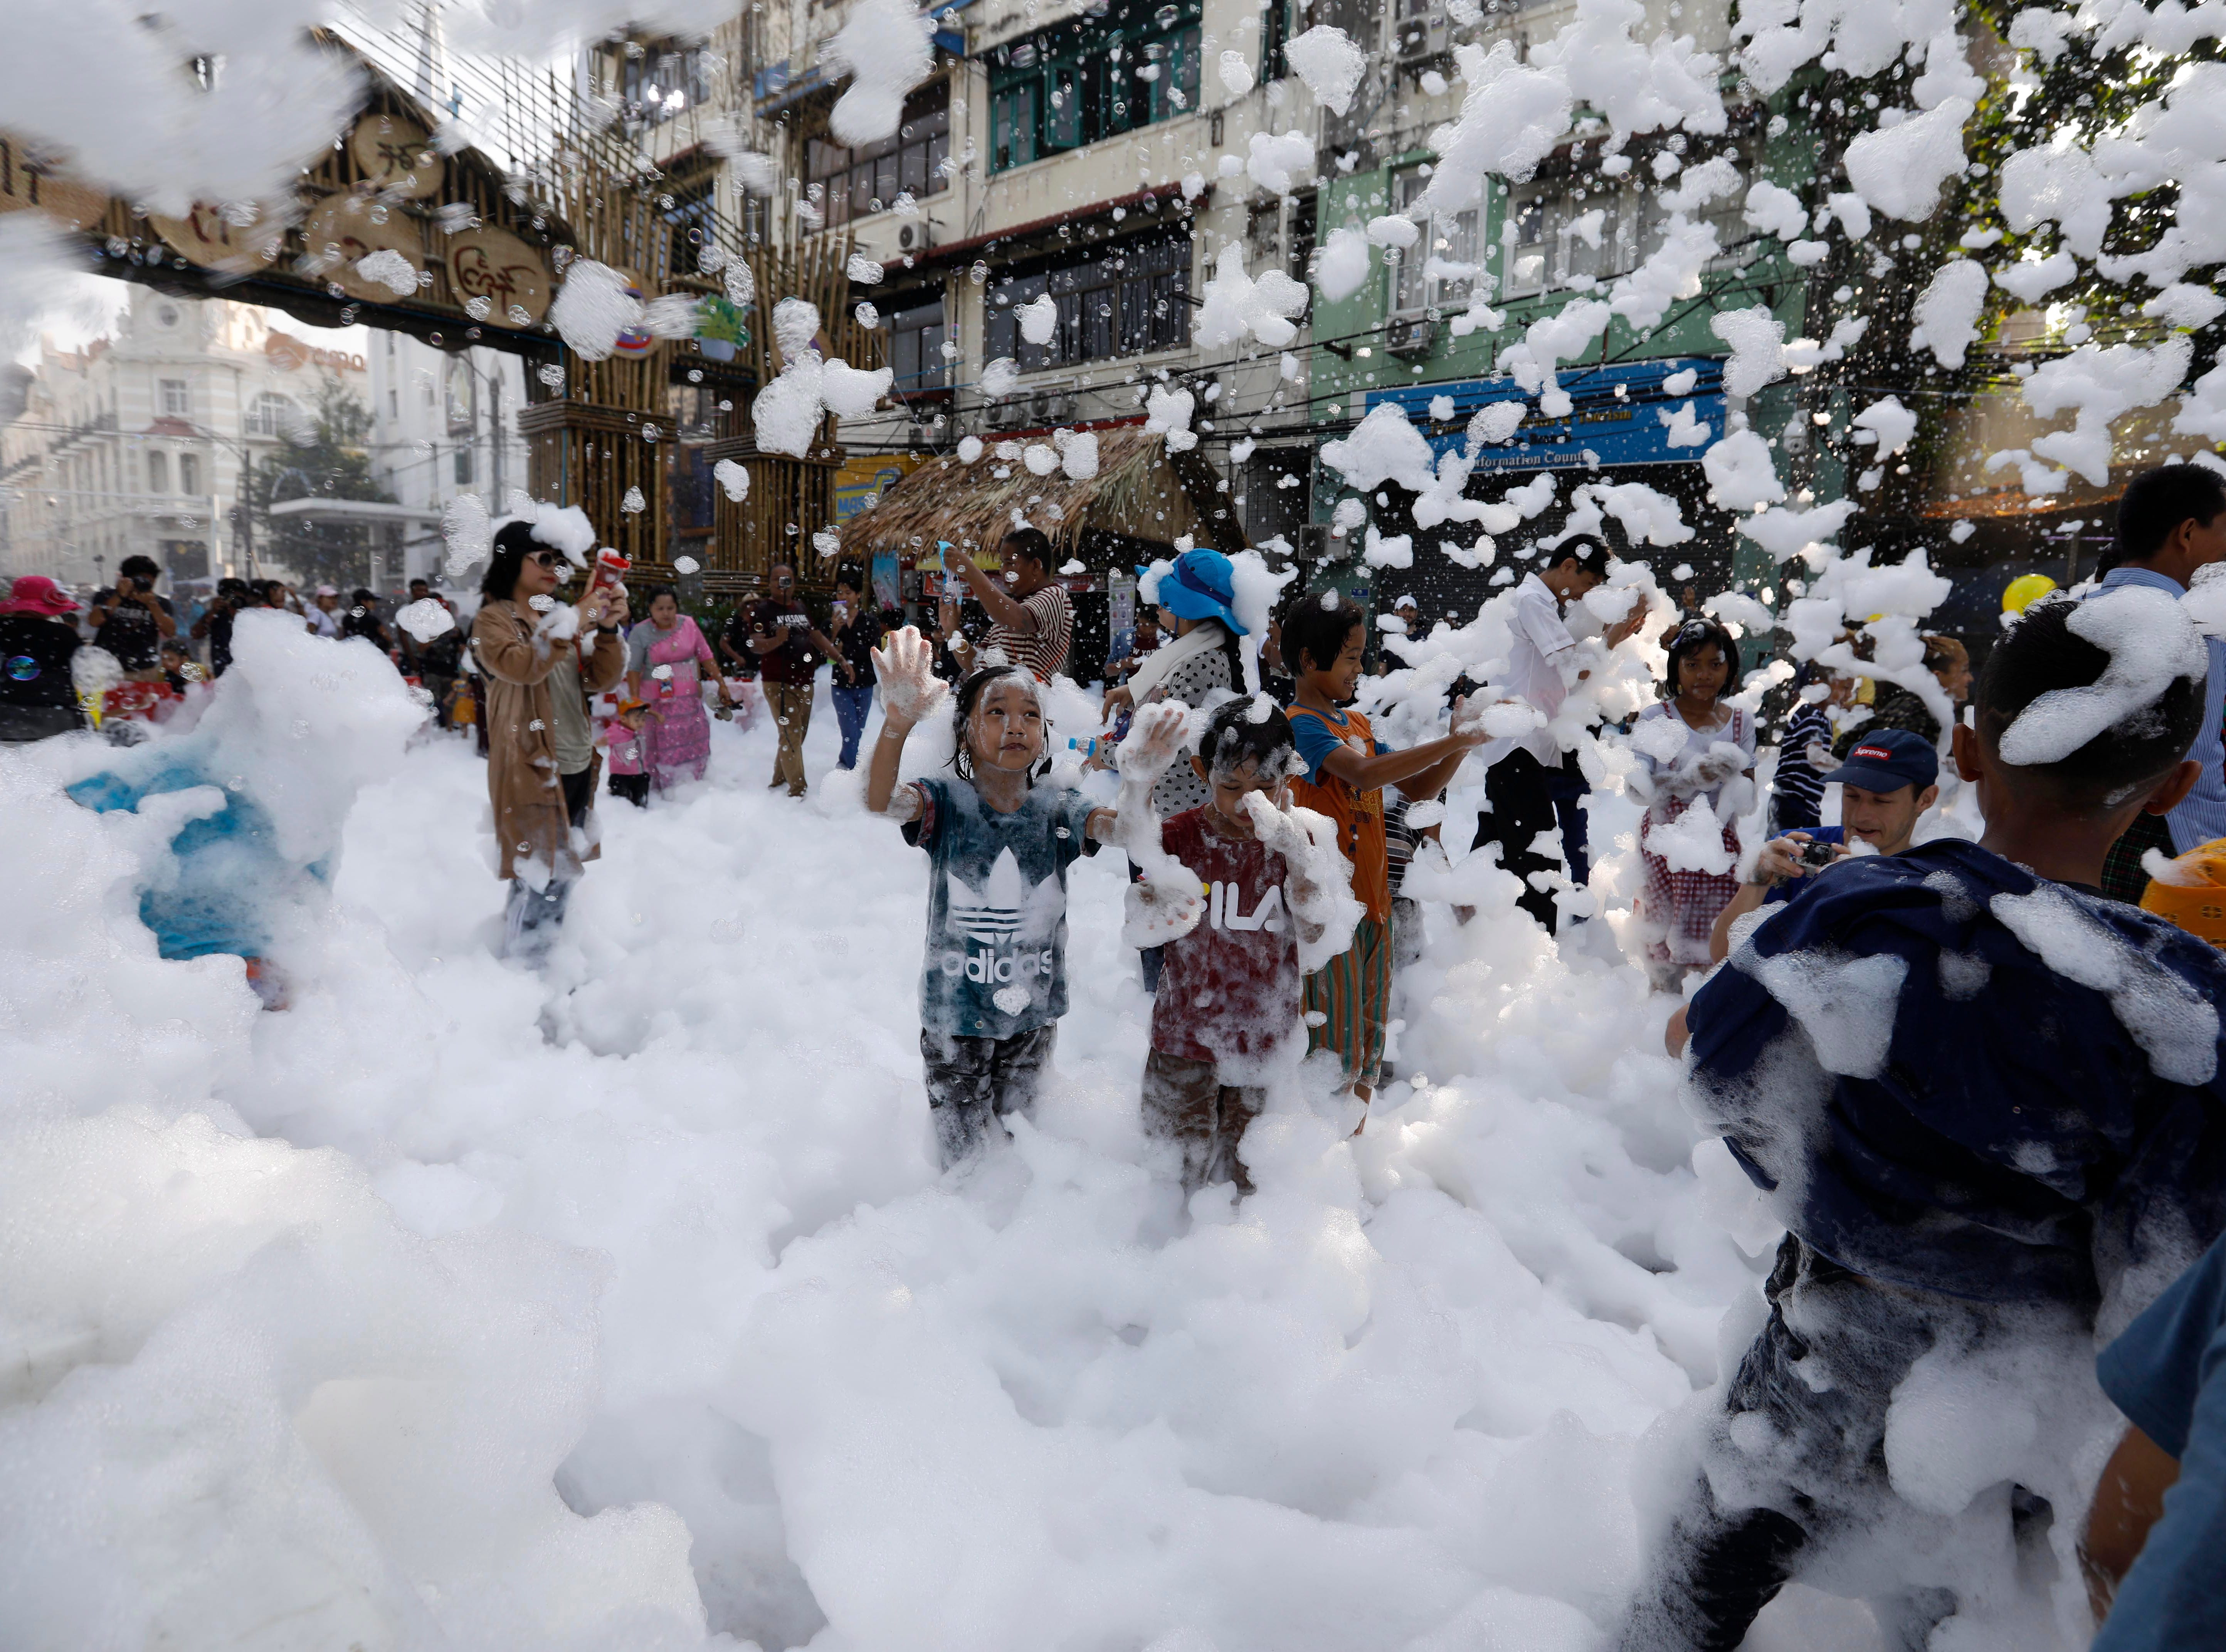 Children play with soap foam during Thingyan Water Festival in Yangon, Myanmar on April 13, 2019. The annual water festival, known as Thingyan, features large groups of people congregating to celebrate the by splashing water and throwing powder at each other's faces as a symbol of cleansing and washing away the sins from the old year. It marks the start of the traditional New Year and is similarly celebrated in countries such as Myanmar, Thailand, Laos, and Cambodia.